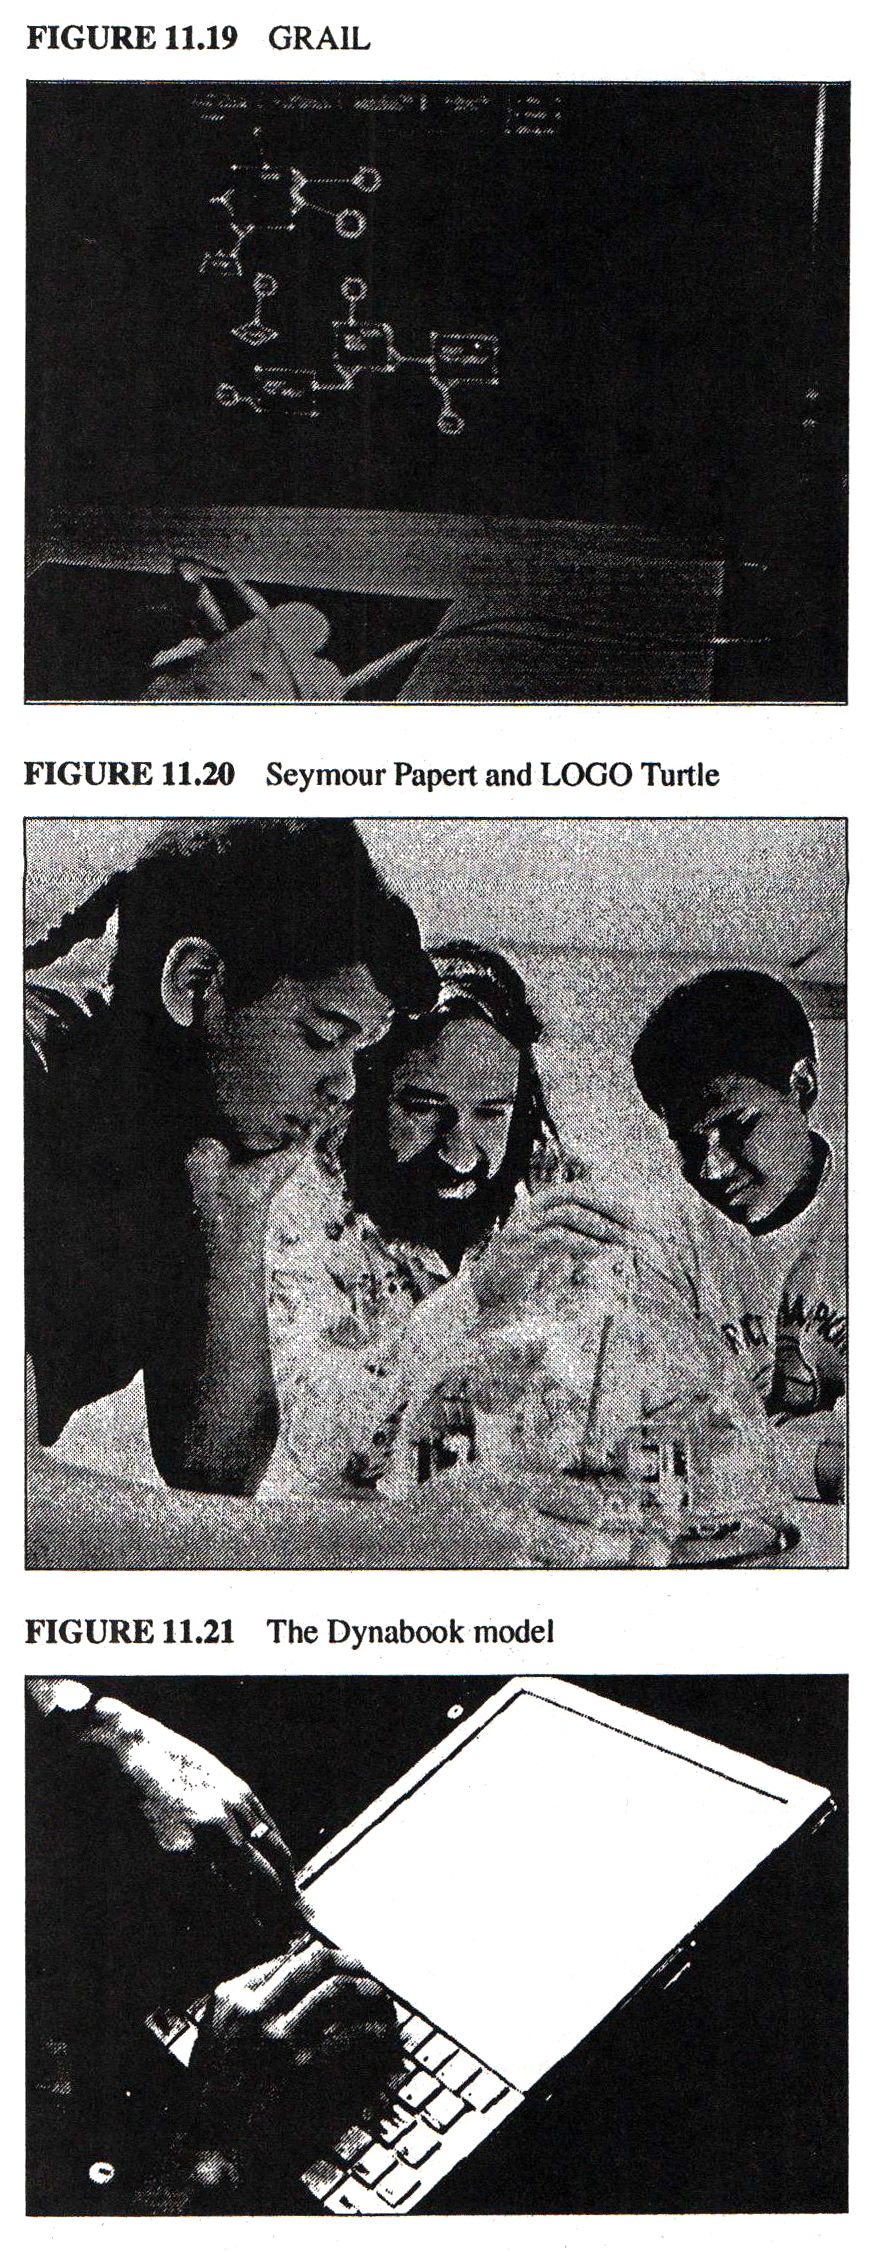 bbb483314e Grail, Seymour Papert and LOGO Turtle, The Dynabook Model